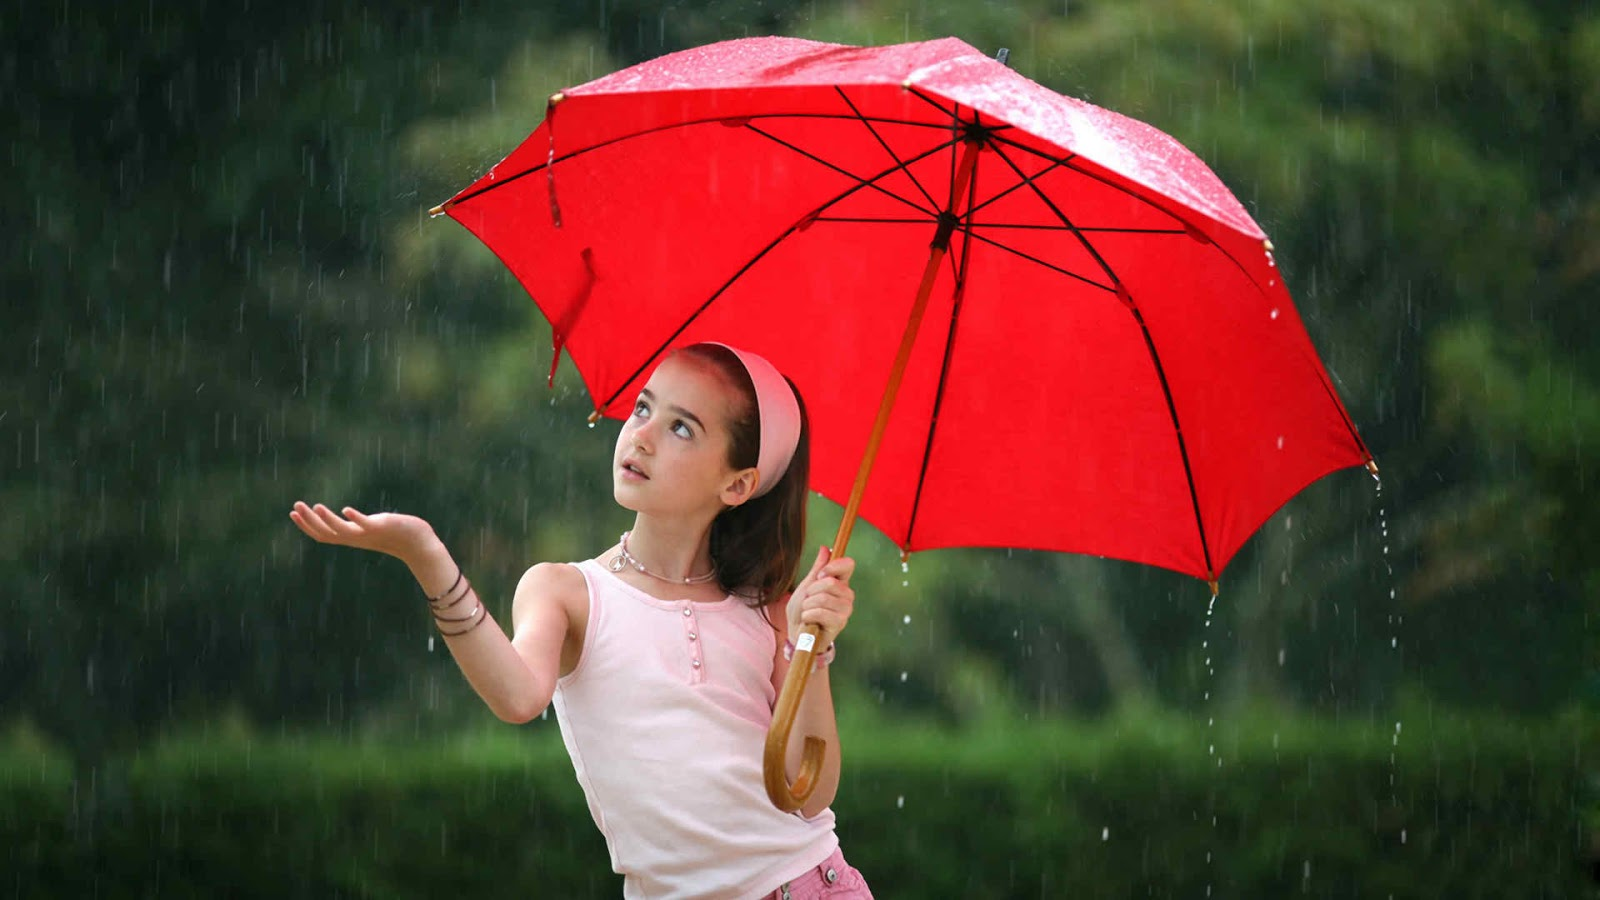 cute girl in rain with red umbrella whatsapp profile dp